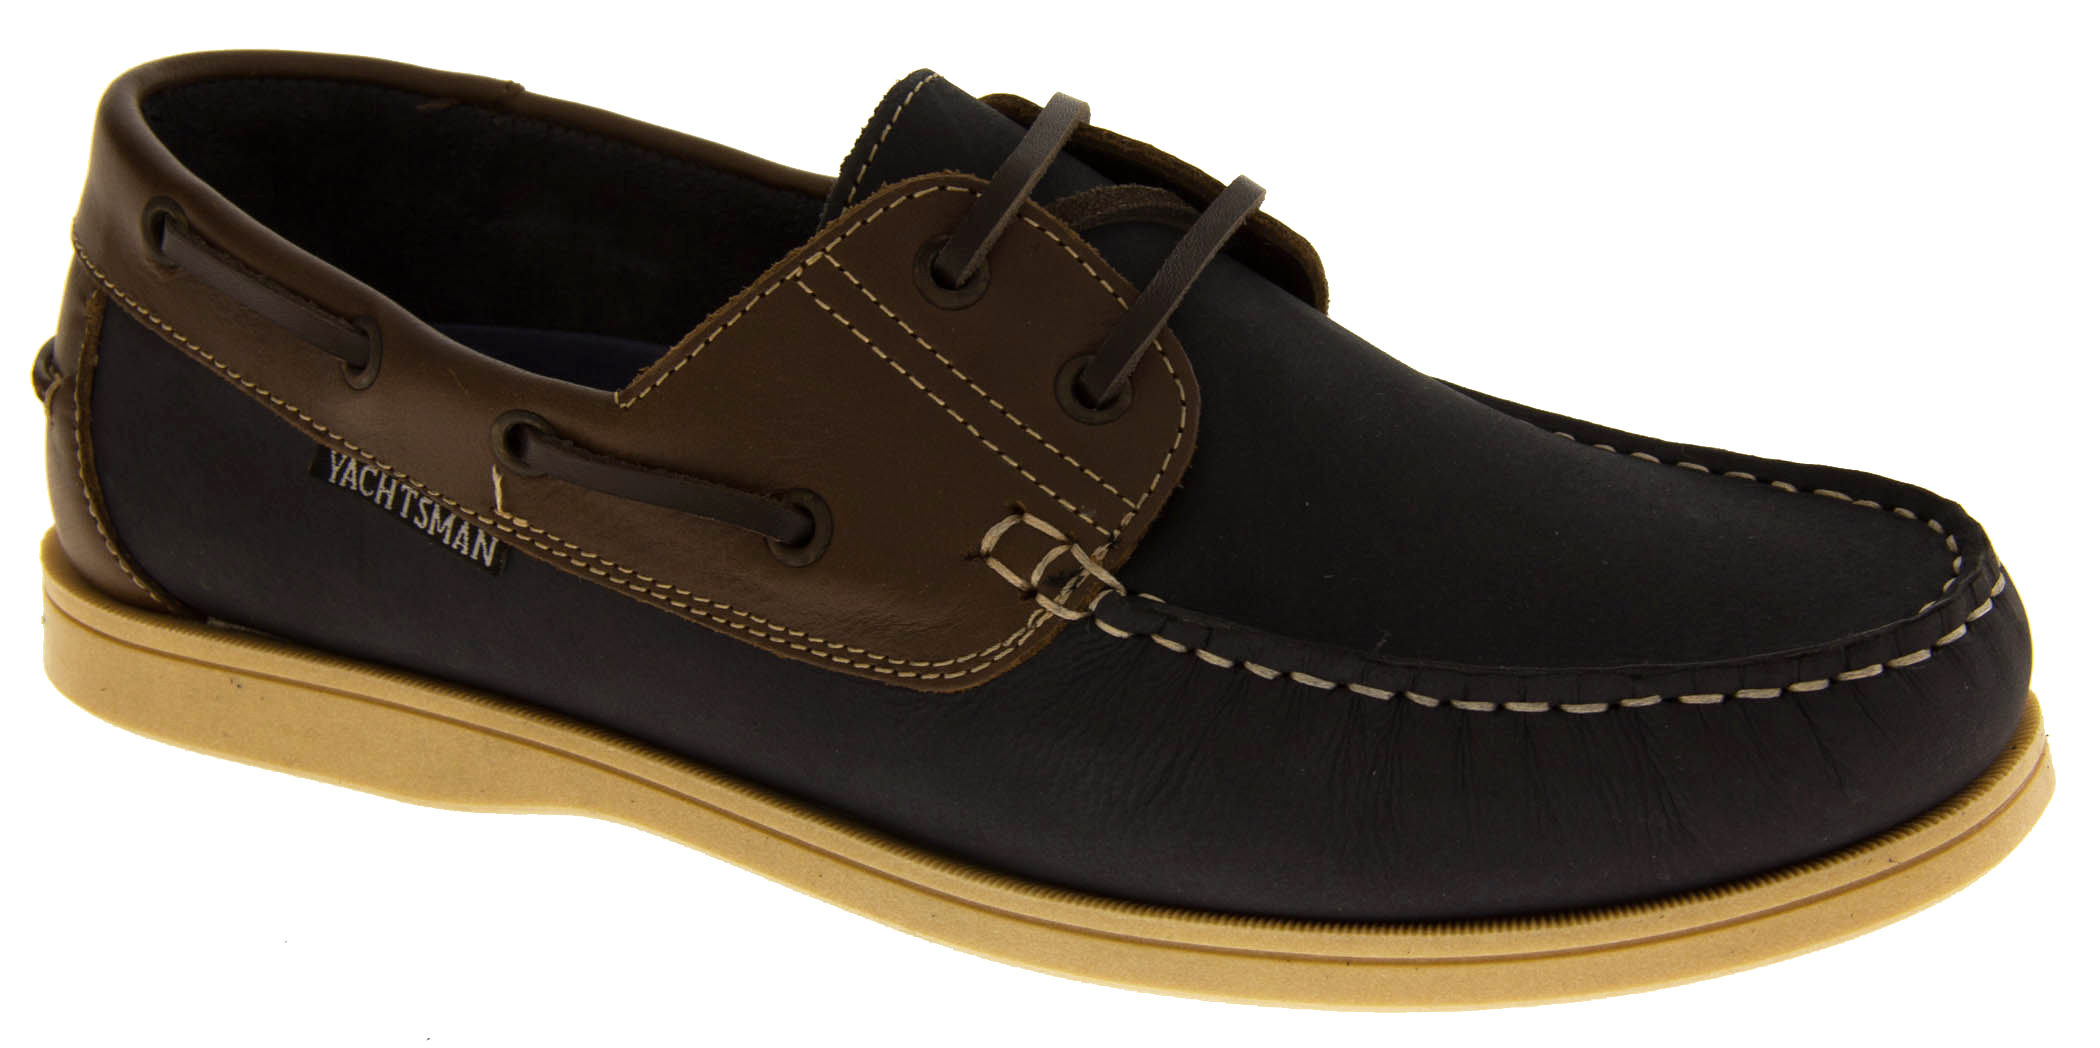 gents leather yachtsman smart formal lace up comfy boating